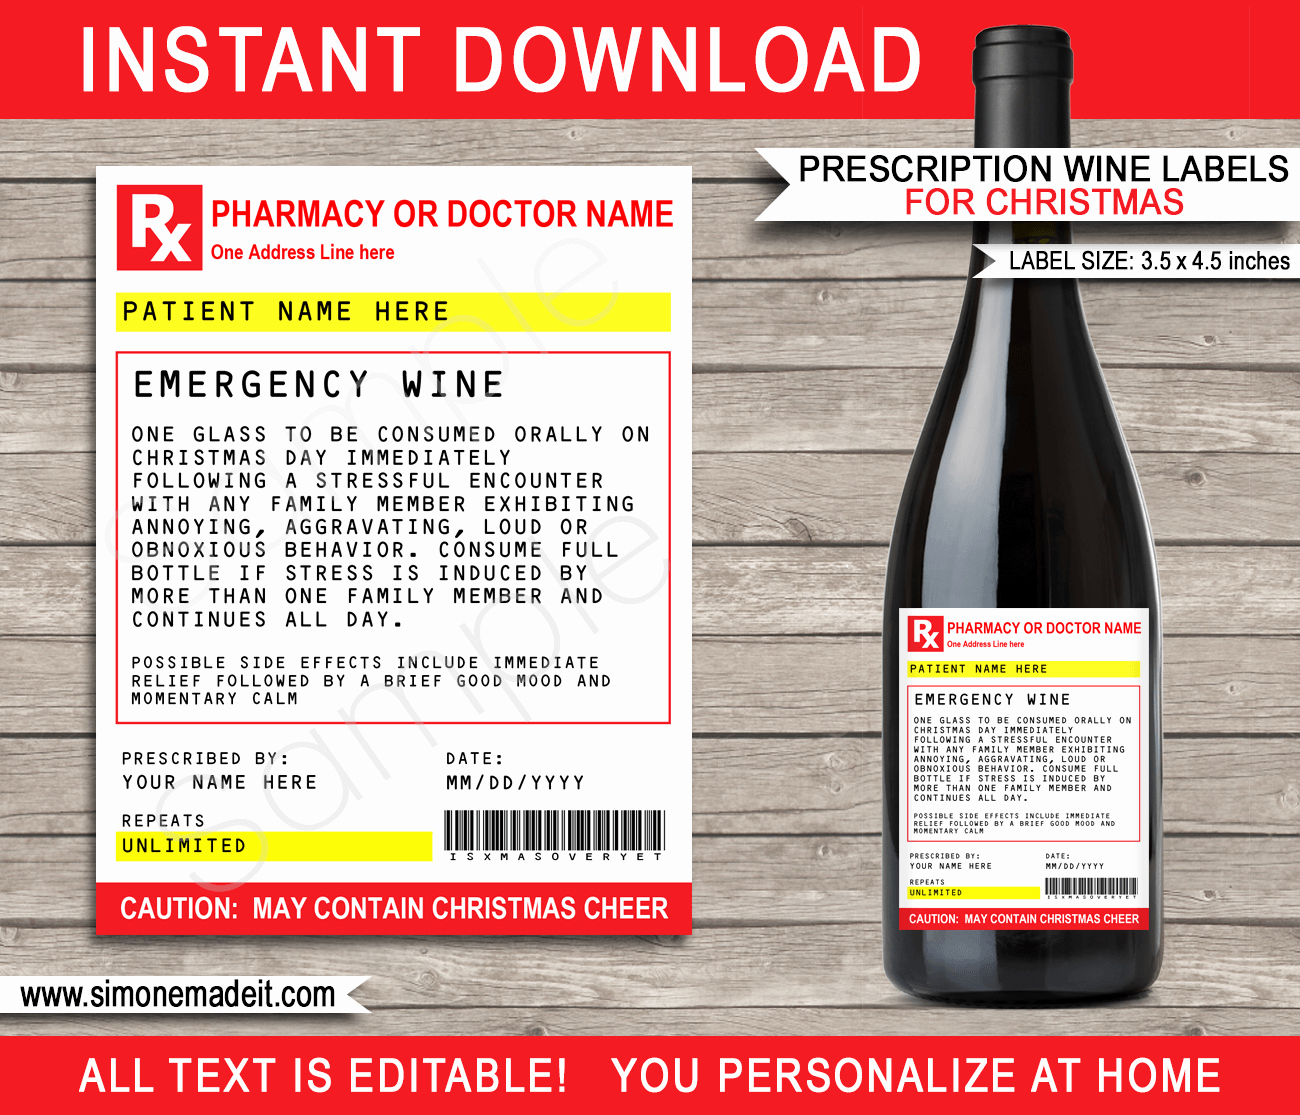 Pill Bottle Label Template Lovely Christmas Prescription Wine Bottle Labels Template Secret